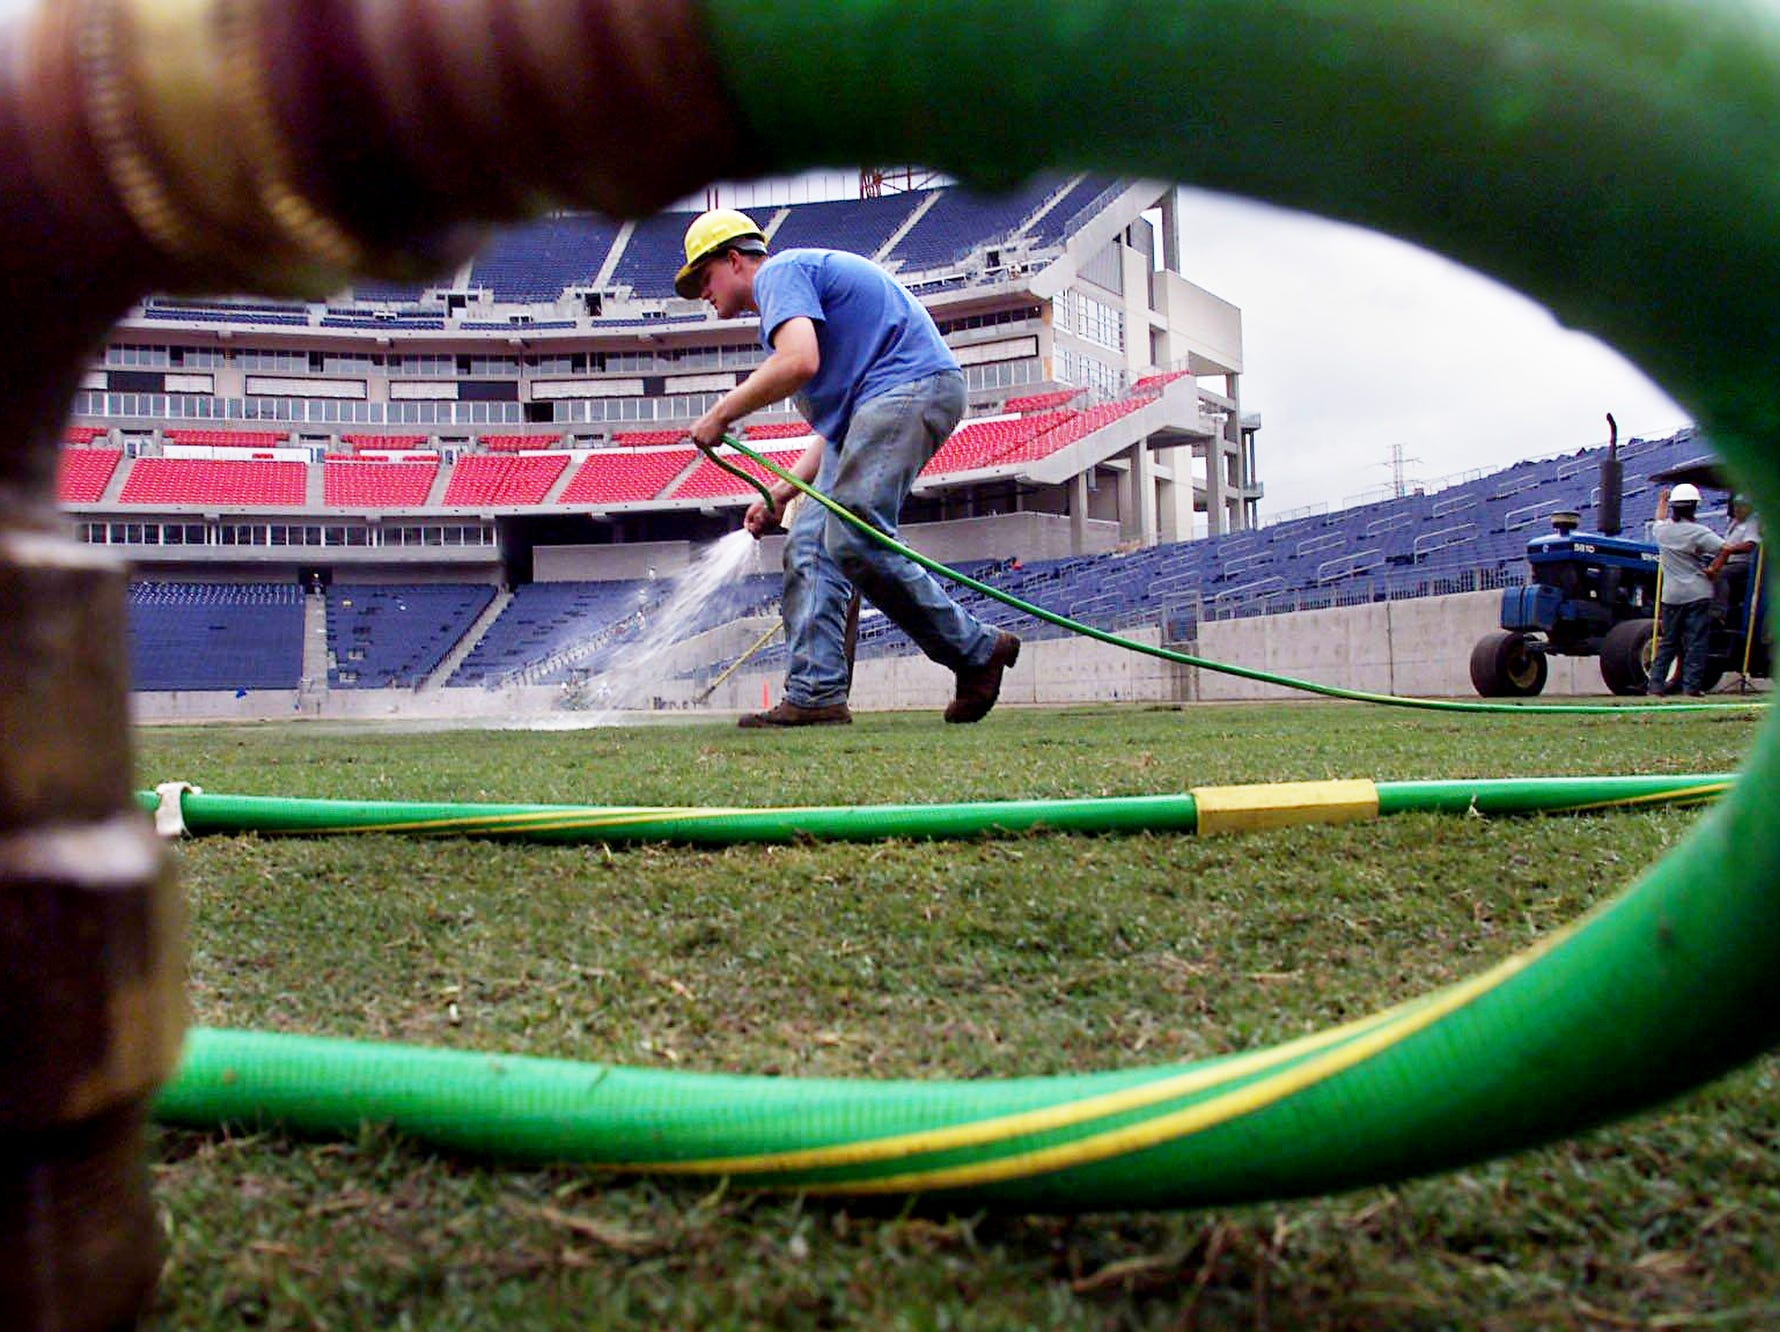 James Newberry, a student at Iowa State, waters the just-laid turf at the new Titans stadium in East Nashville May 18, 1999. After the special turf is laid, Newberry will stay in Nashville for a month to keep it in good shape.